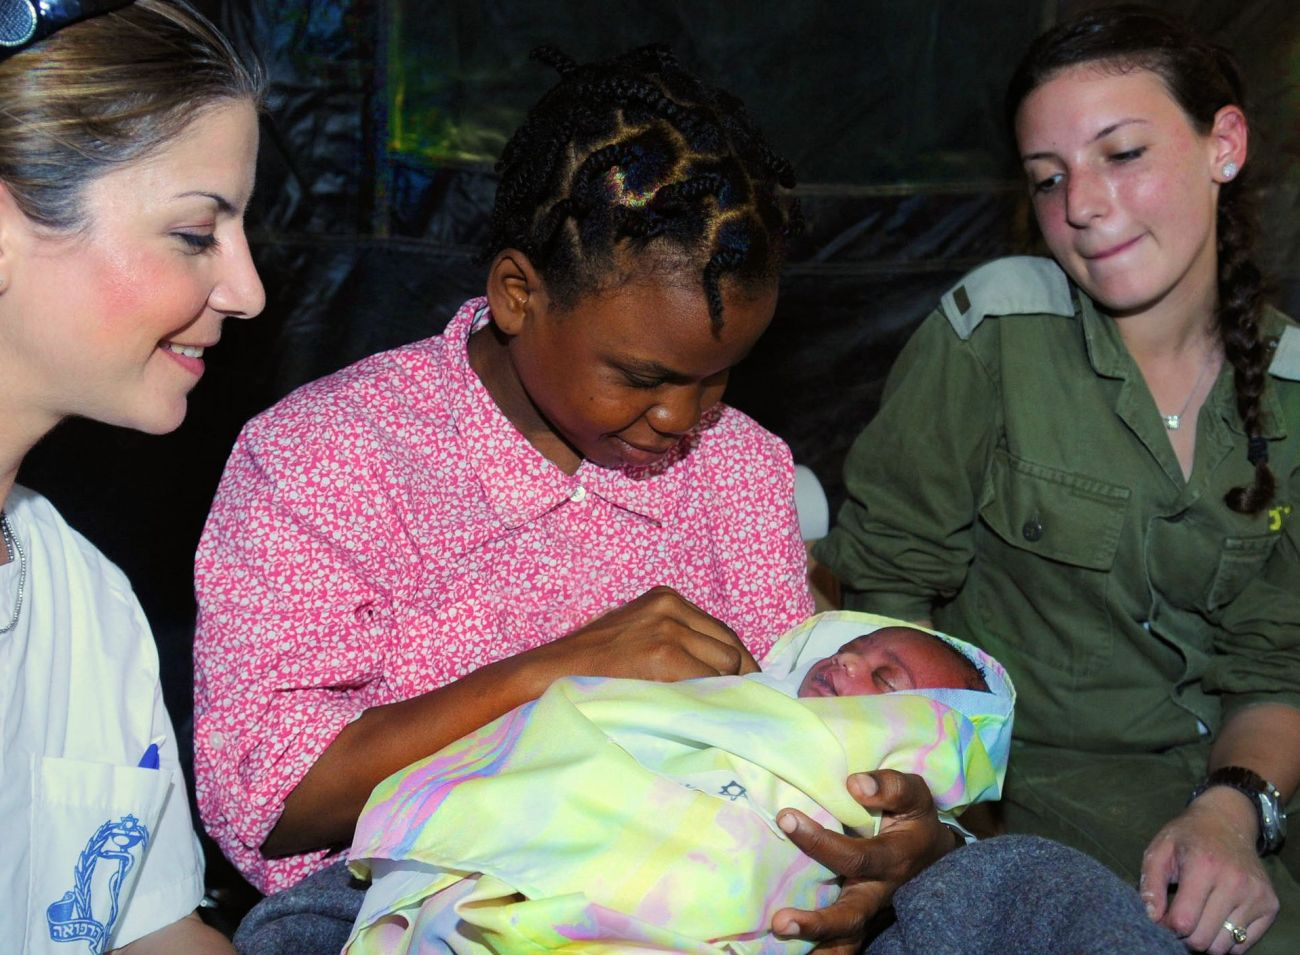 Flickr_-_Israel_Defense_Forces_-_First_Baby_Delivered_at_IDF_Field_Hospital_in_Haiti,_Jan_2010_tc